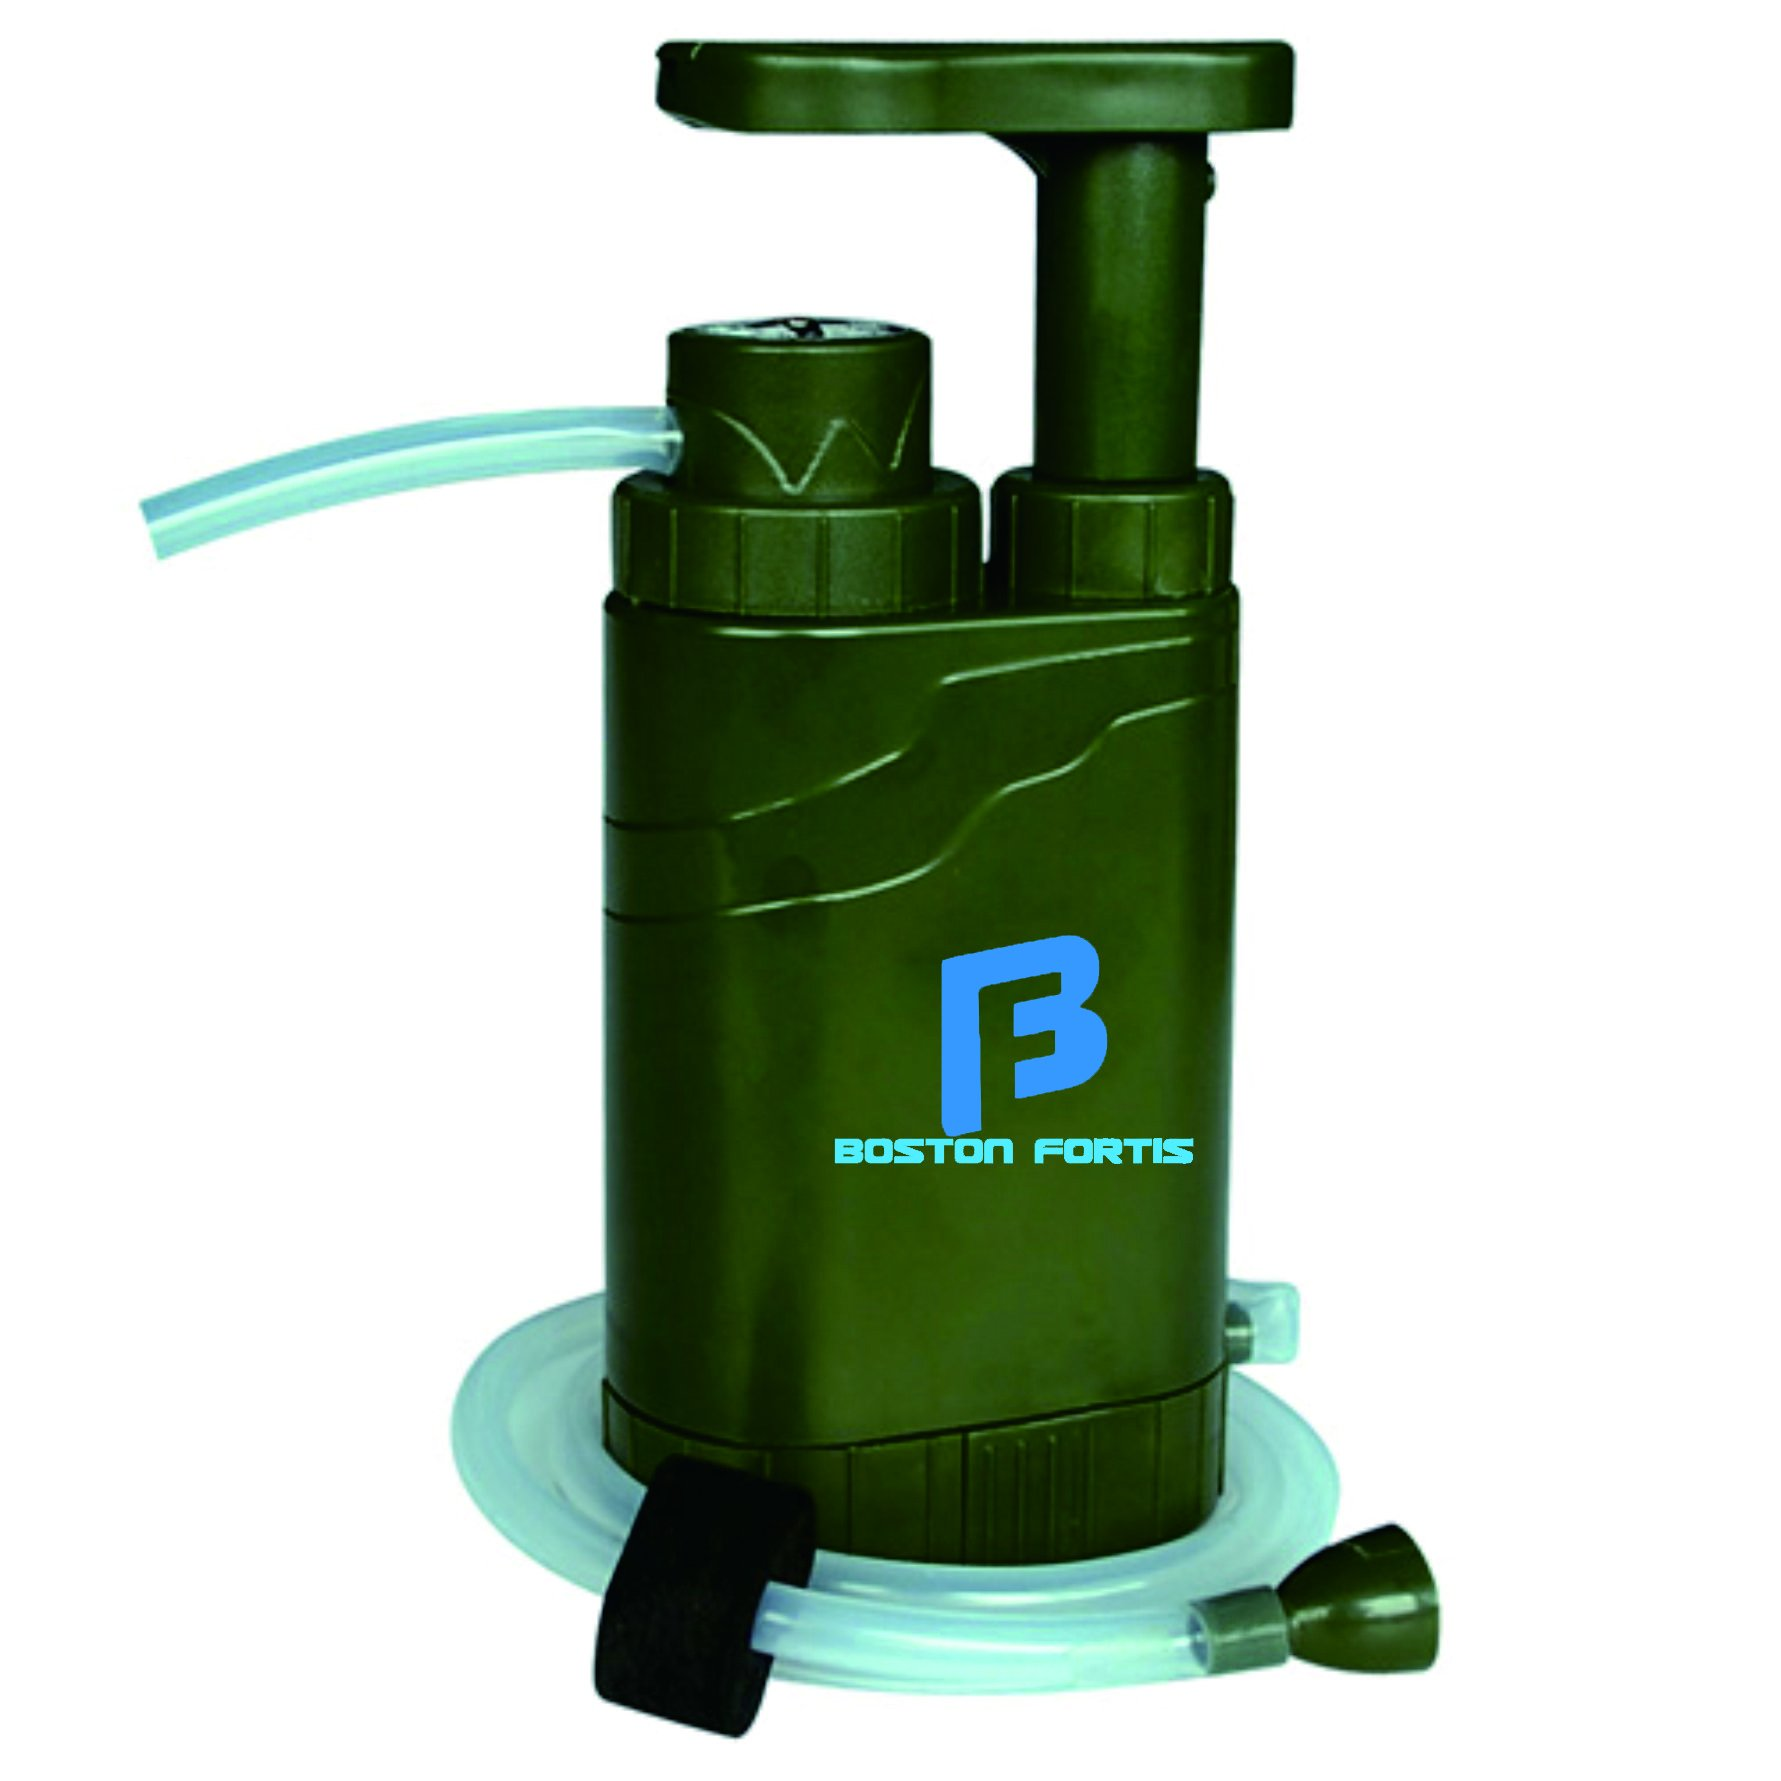 Boston Fortis Personal Portable Water Filter, 4-Stage Purifier, Emergency Survival Gear, Outdoor, Hiking, Camping, Travel, Backpacking, Military, 0.1 Micron, with 5 Integrated Features by Boston Fortis